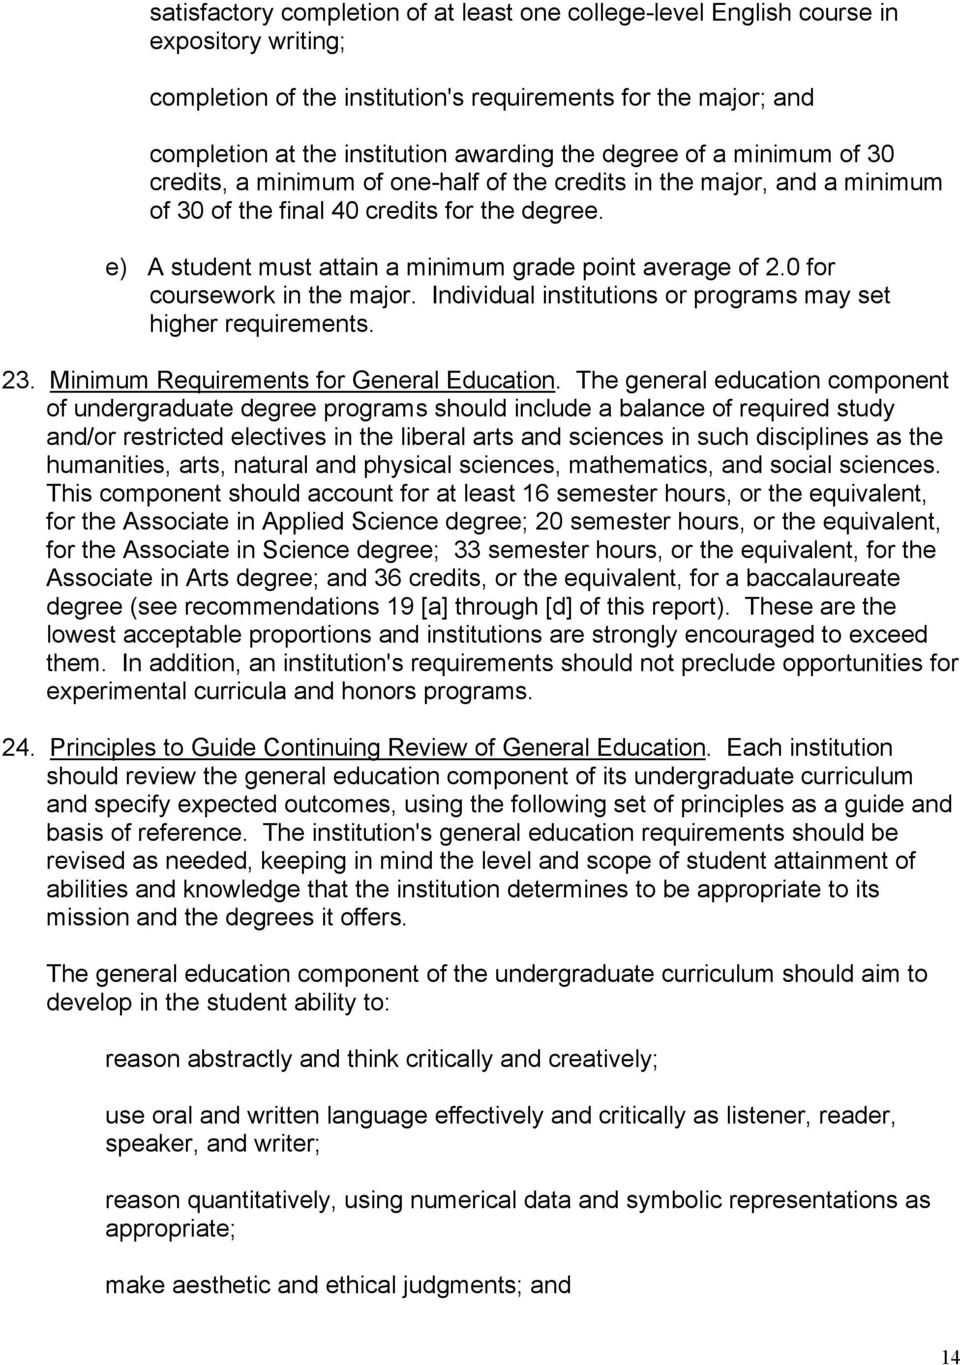 e) A student must attain a minimum grade point average of 2.0 for coursework in the major. Individual institutions or programs may set higher requirements. 23.